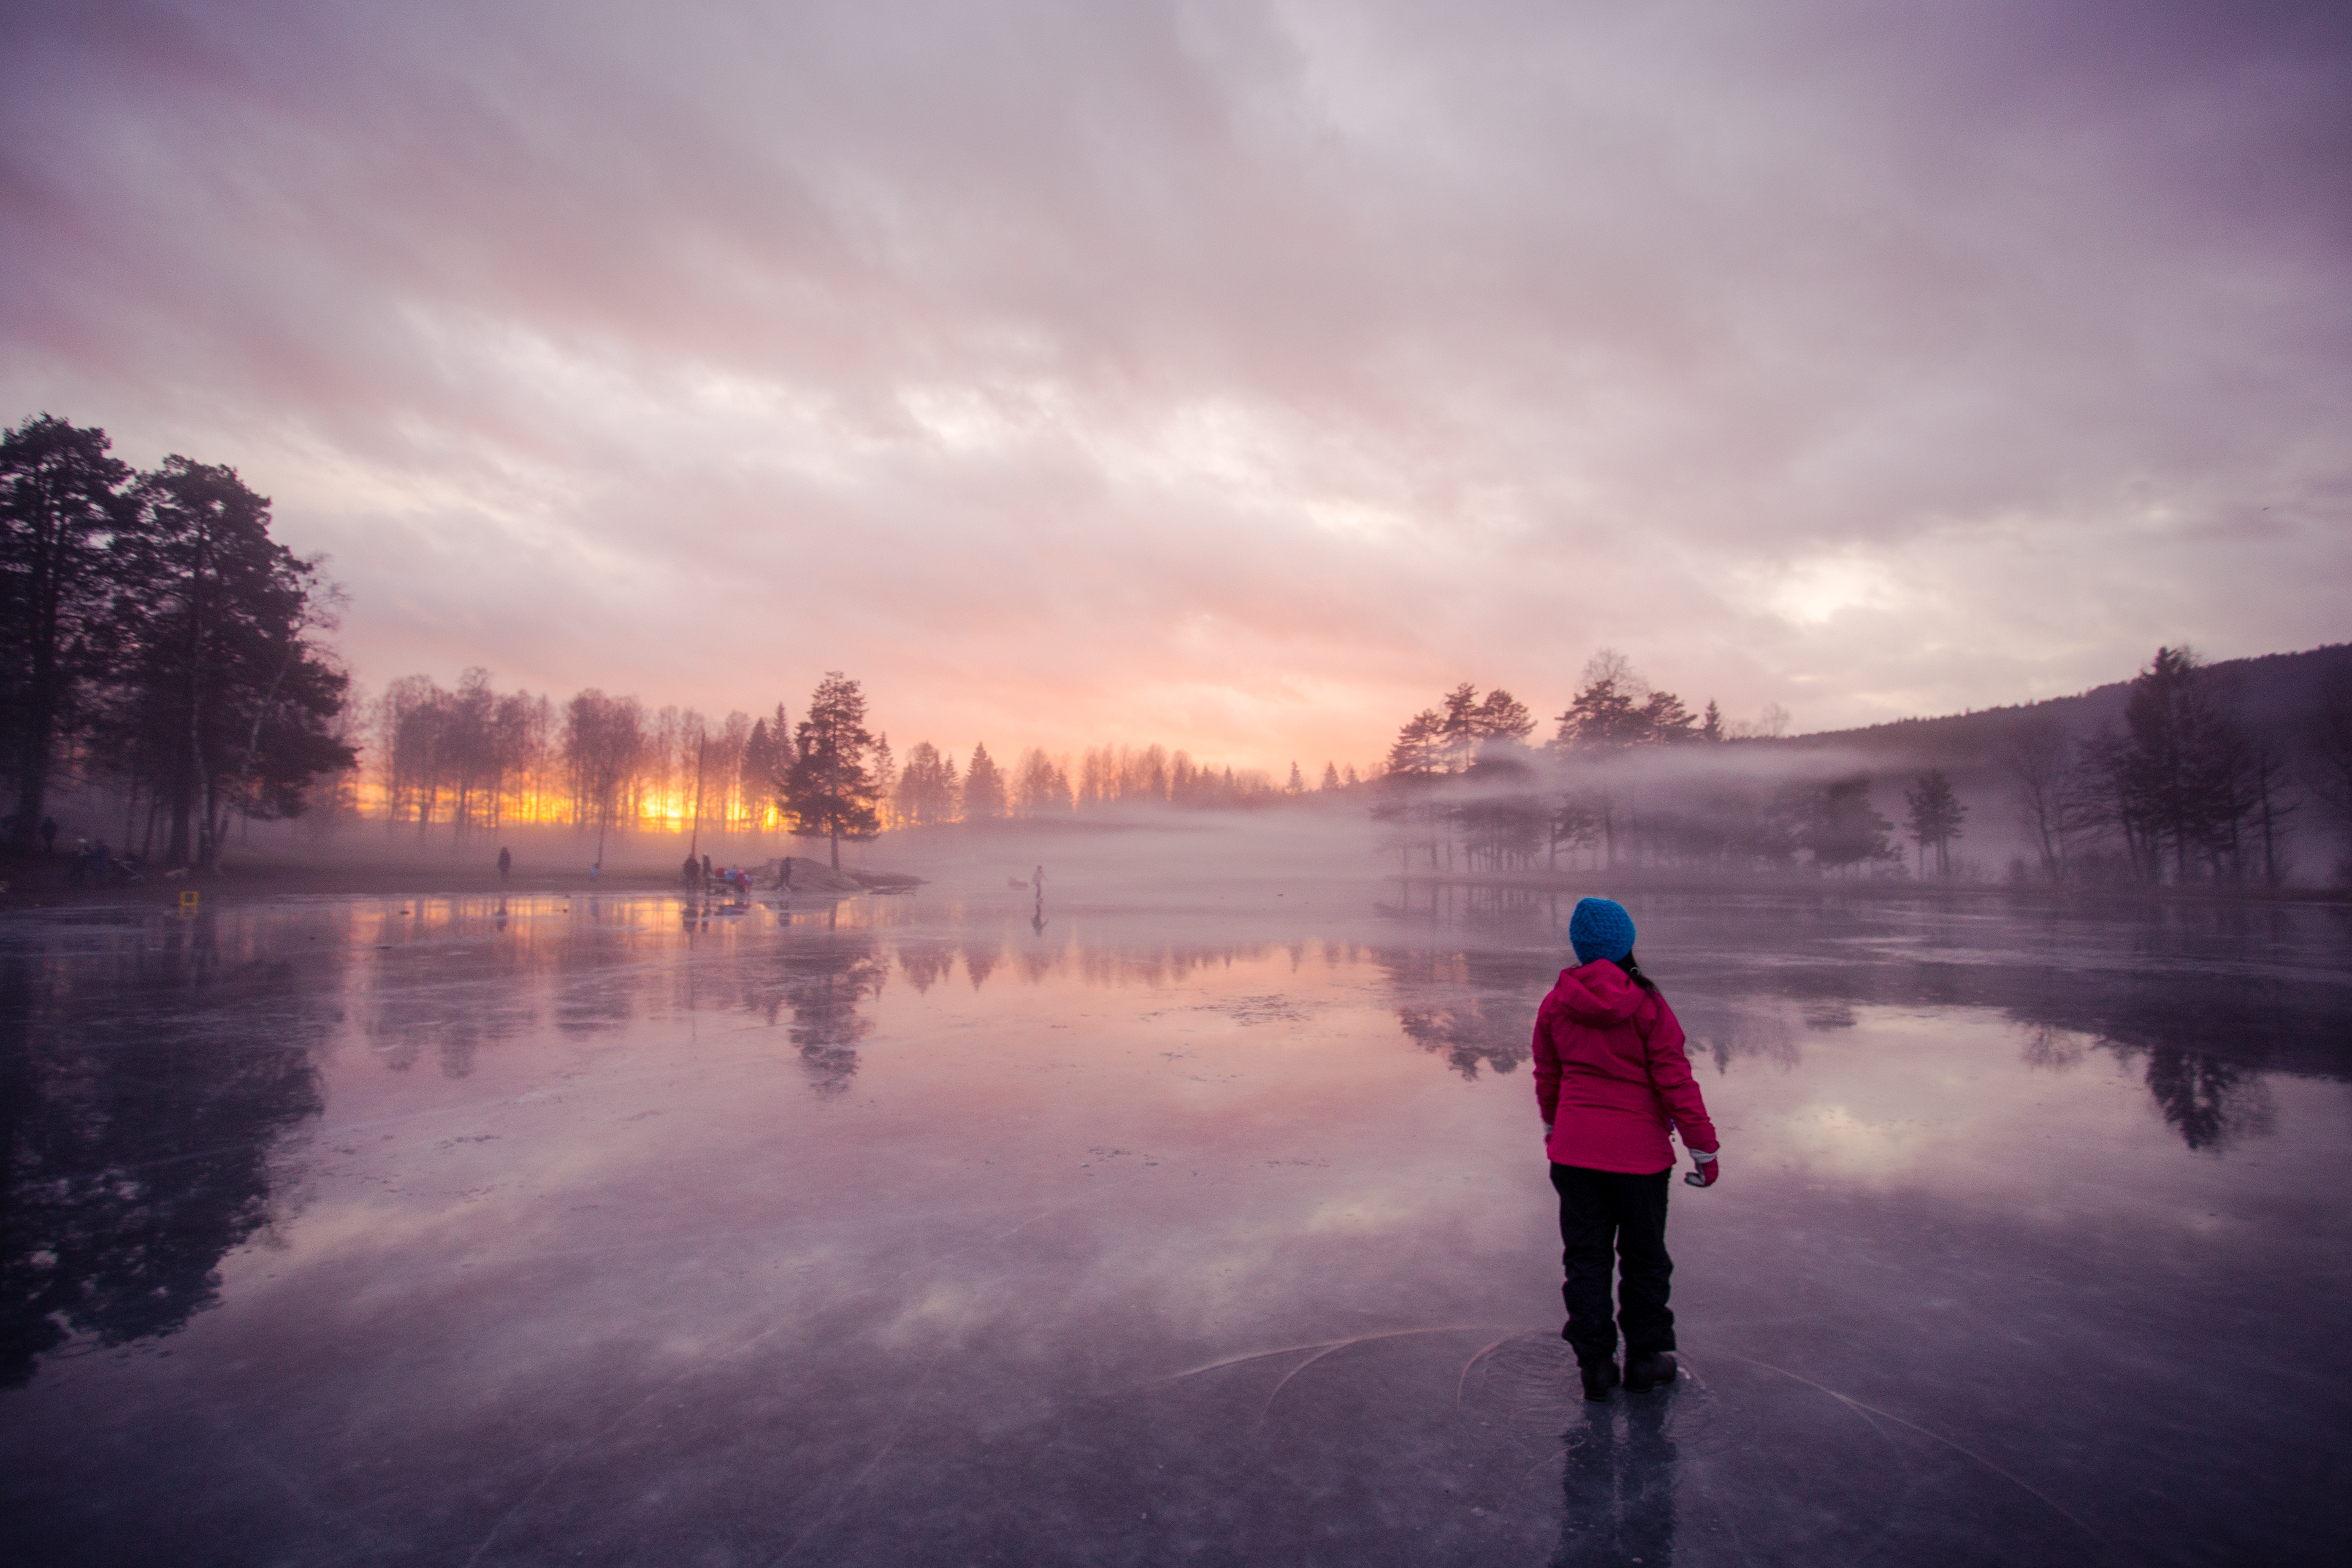 Walking on the ice